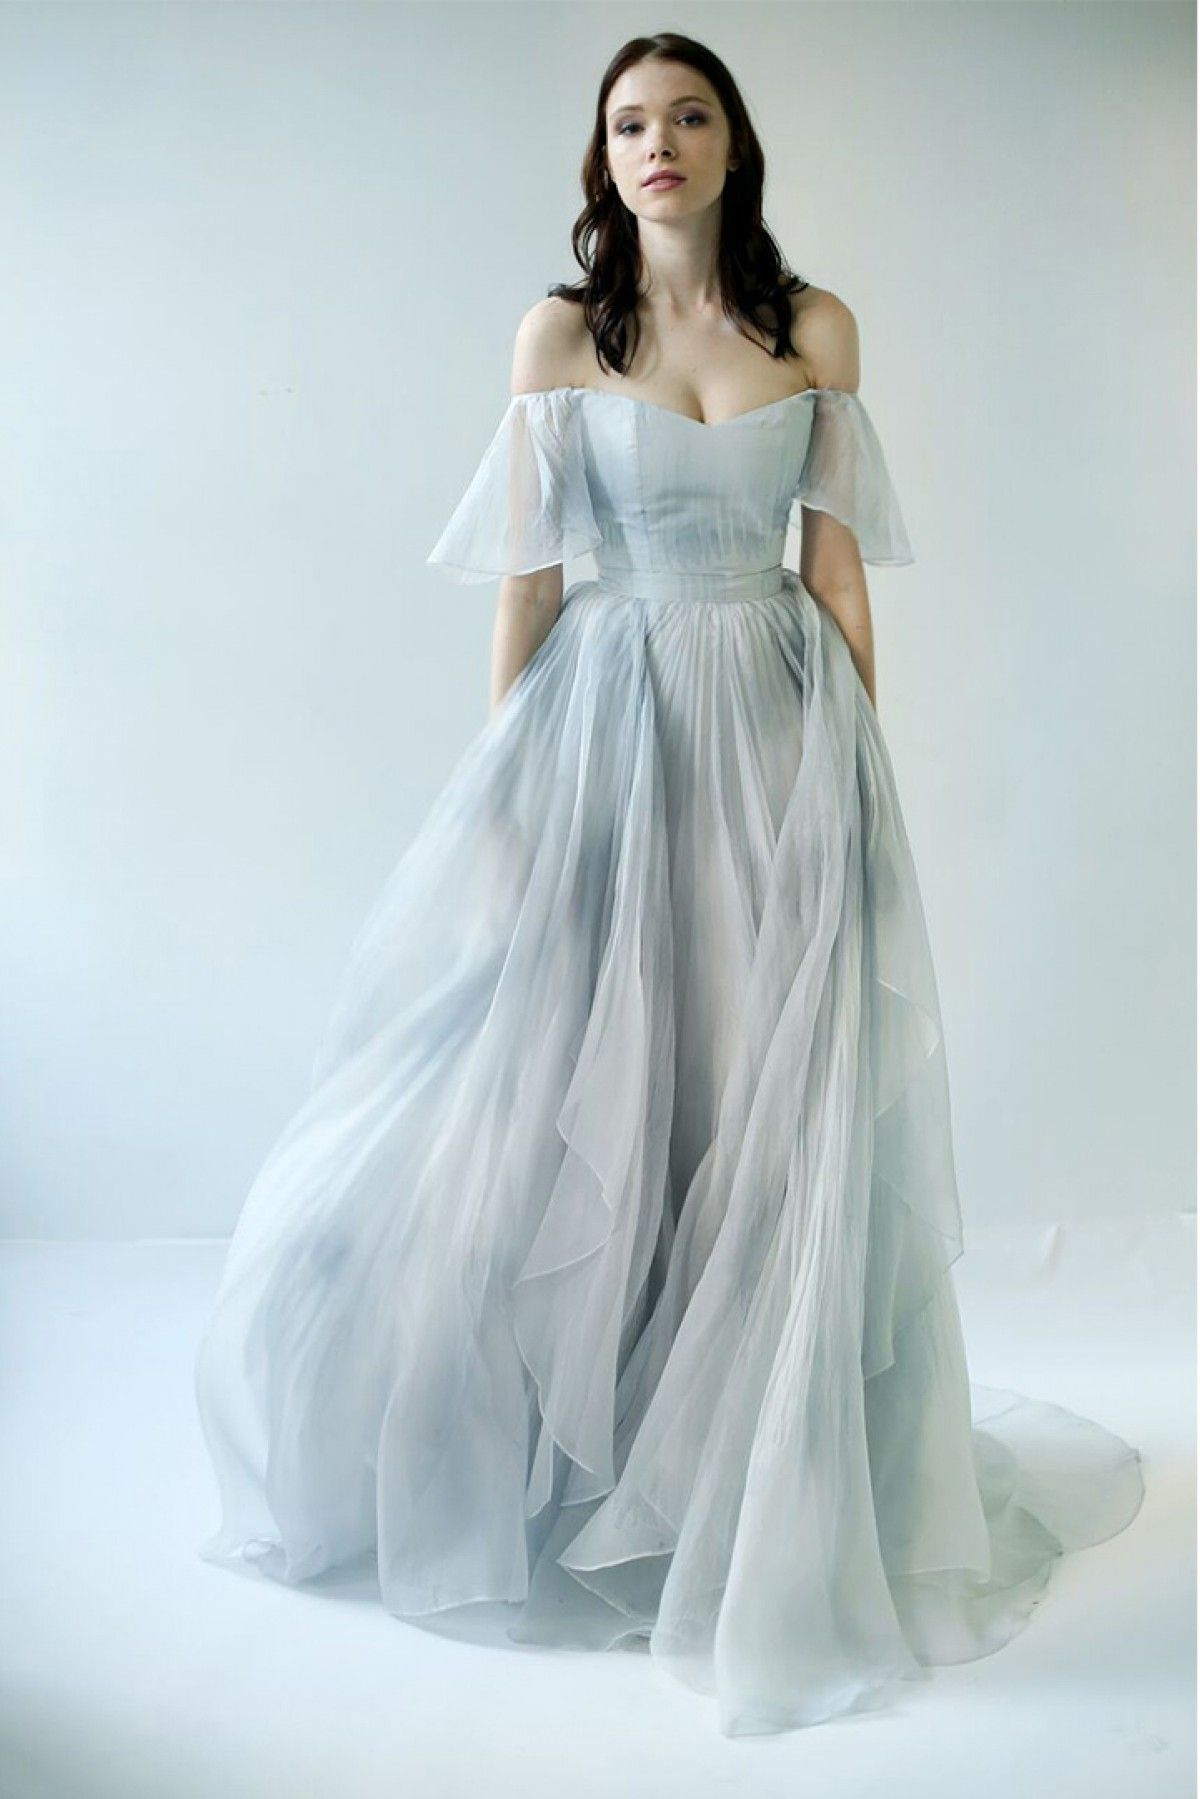 Youdesign organza gown in sky blue colour compliments feminine